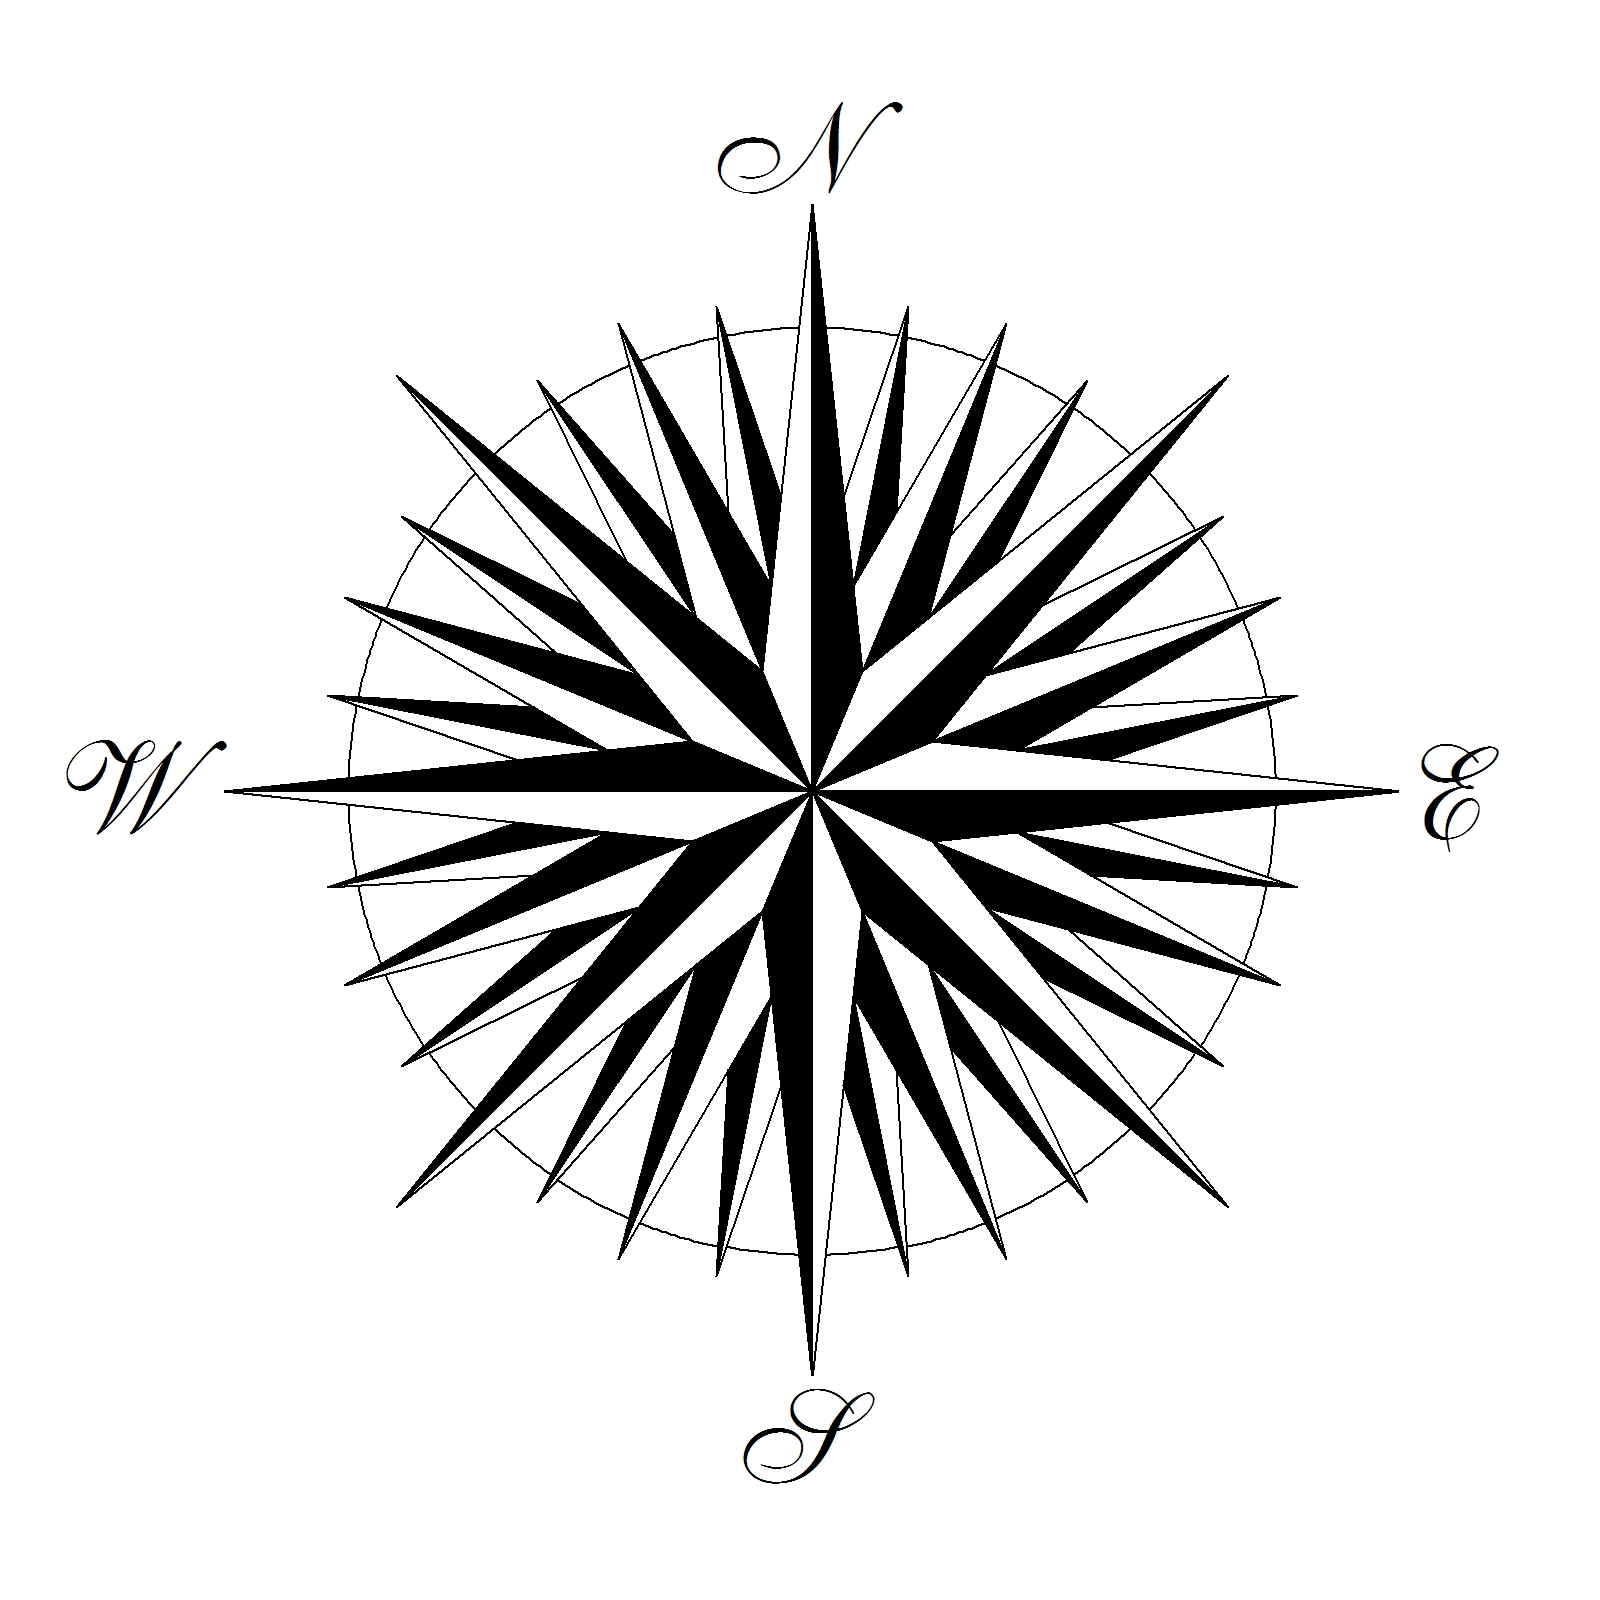 Compass Rose Drawing Compass Rose